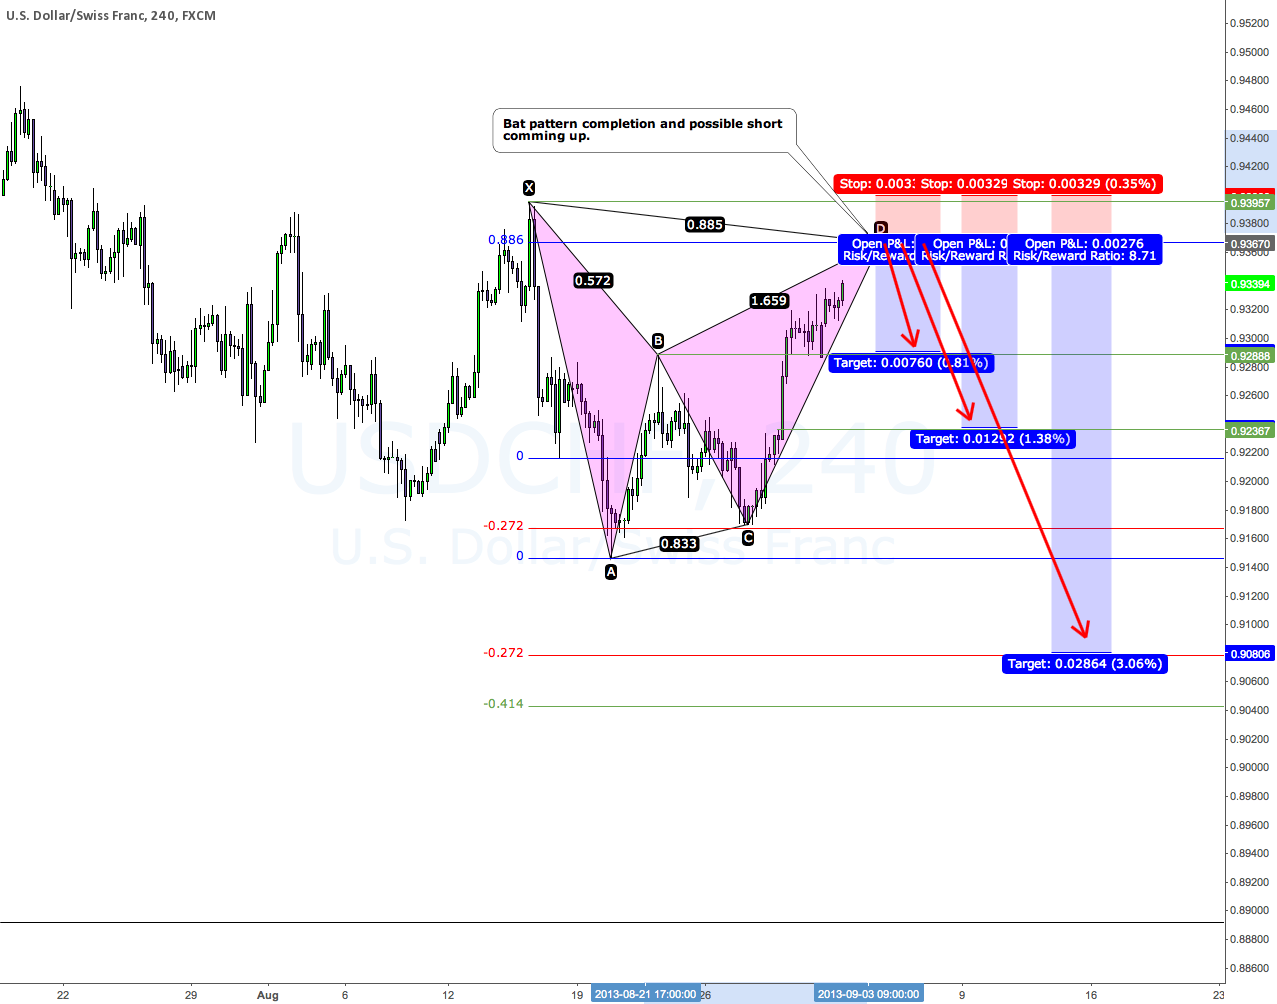 Bat pattern completion ahead on the 4H chart.